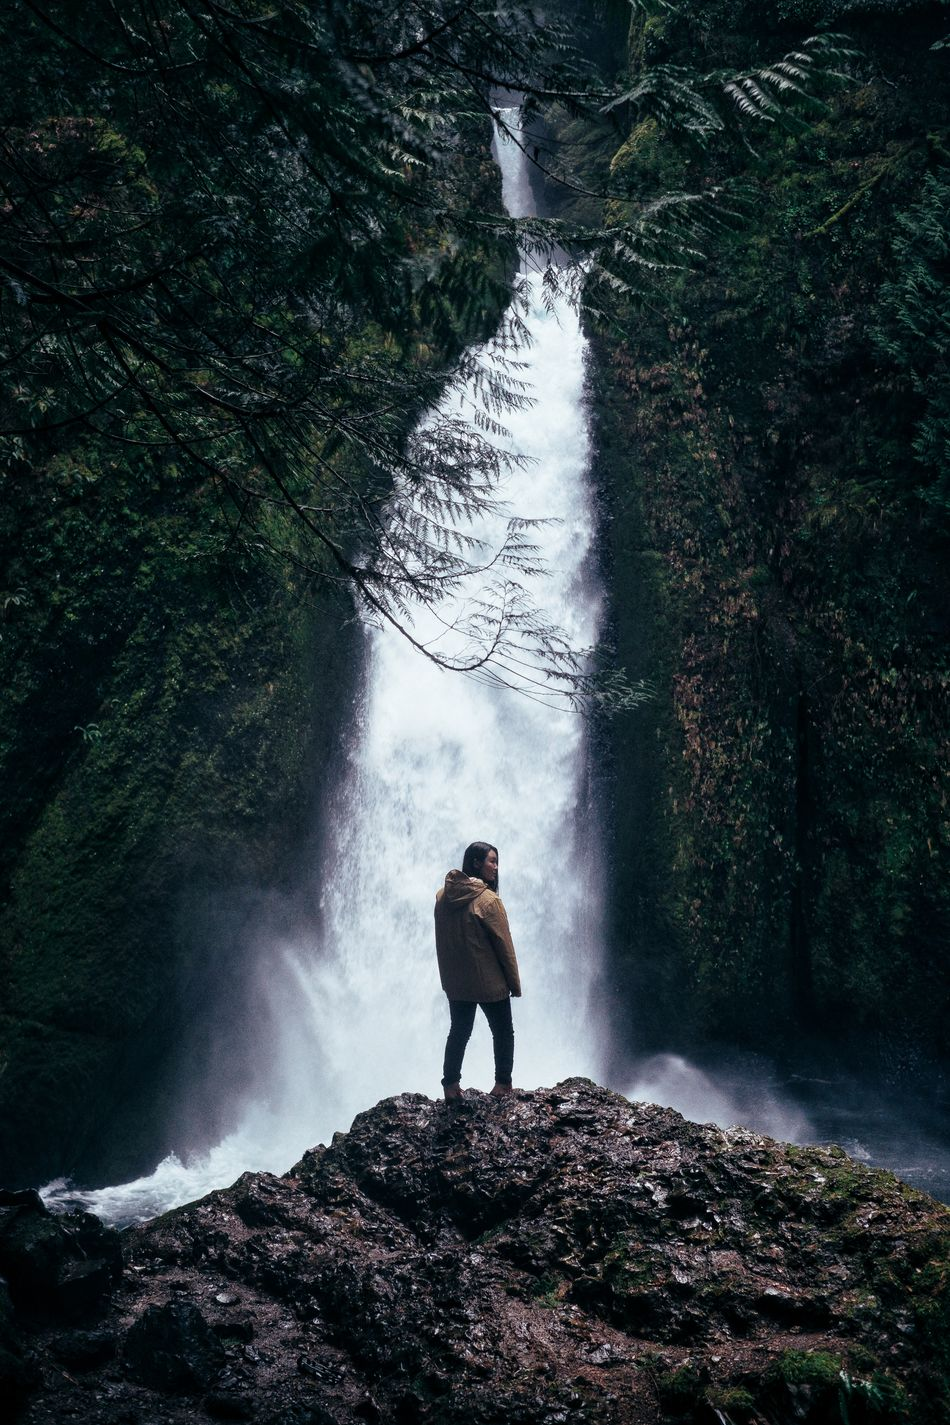 Adventure One Person Full Length Real People Outdoors People Nature Beauty In Nature PNW Water Waterfall Wahclella Falls Trail Travel Tourism Moody Tranquil Scene Oregon Columbia River Gorge Adventure